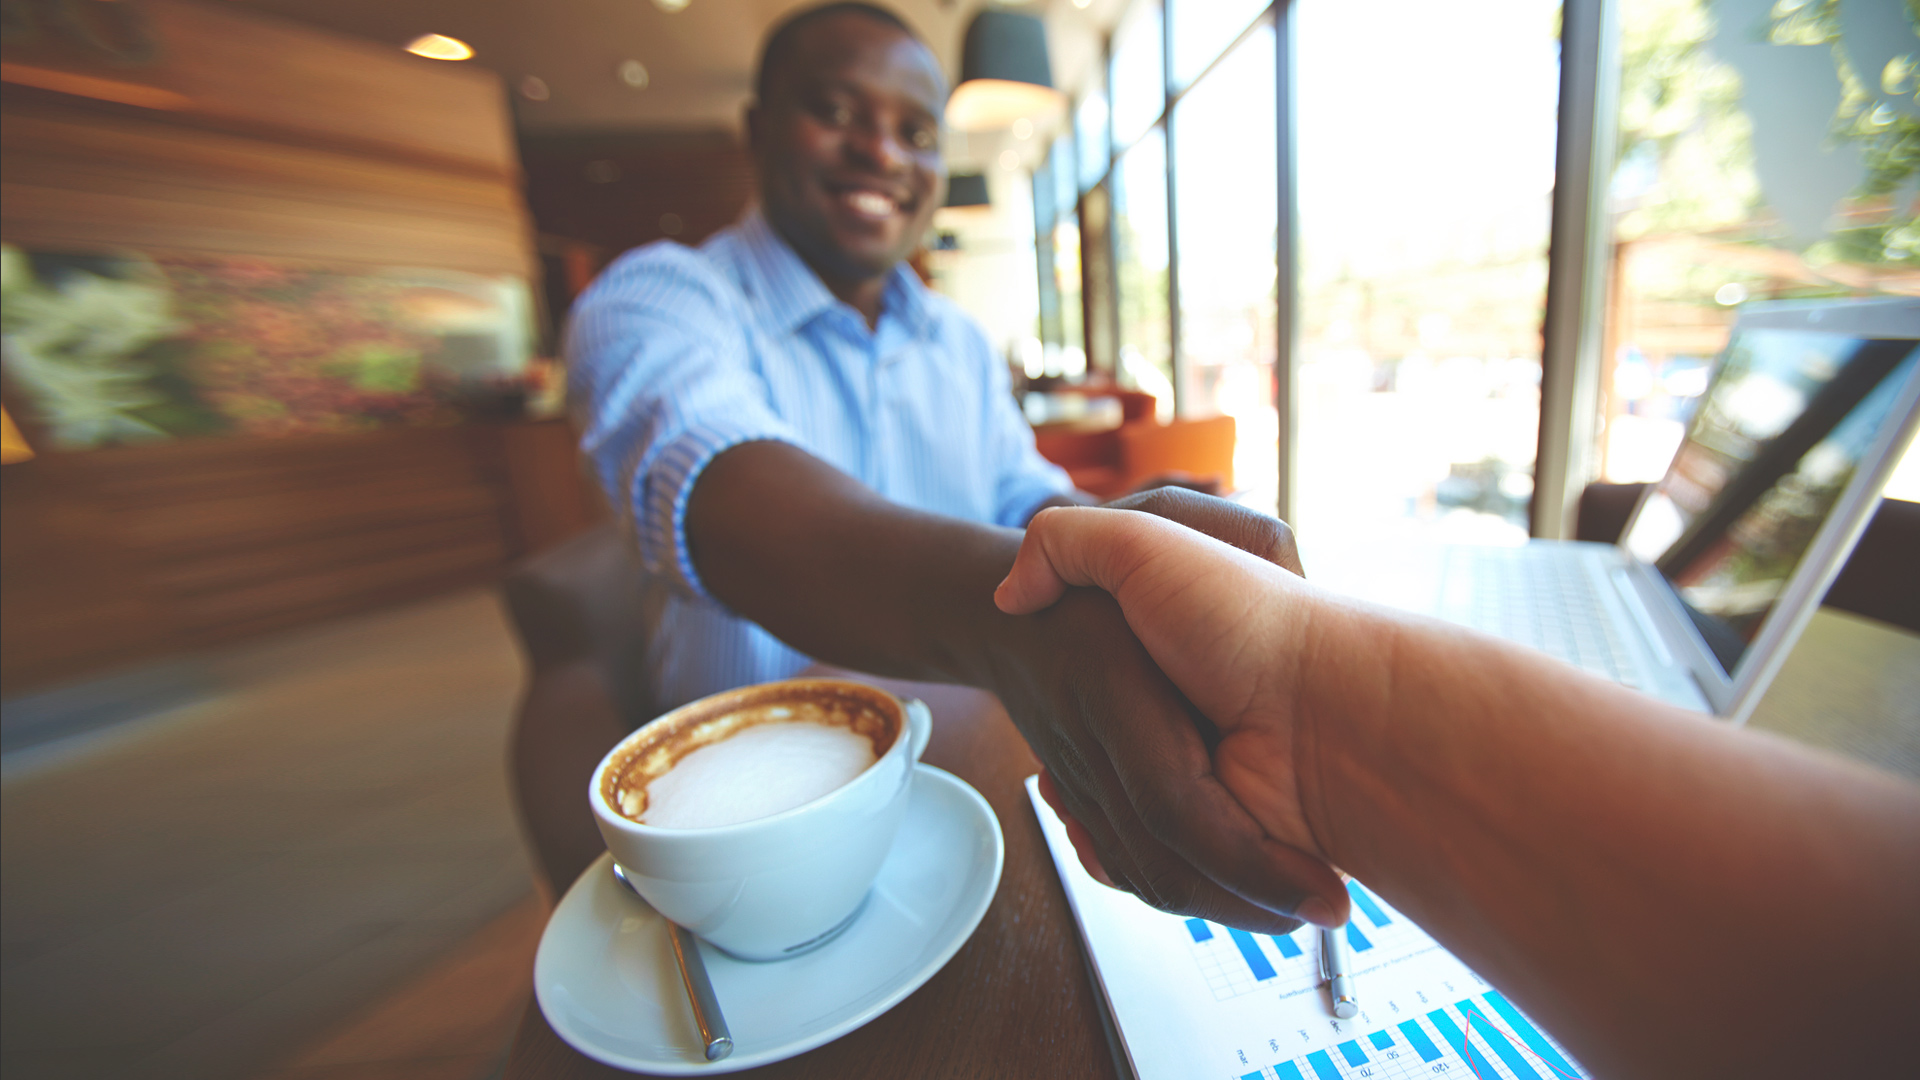 Man shaking hand while drinking coffee